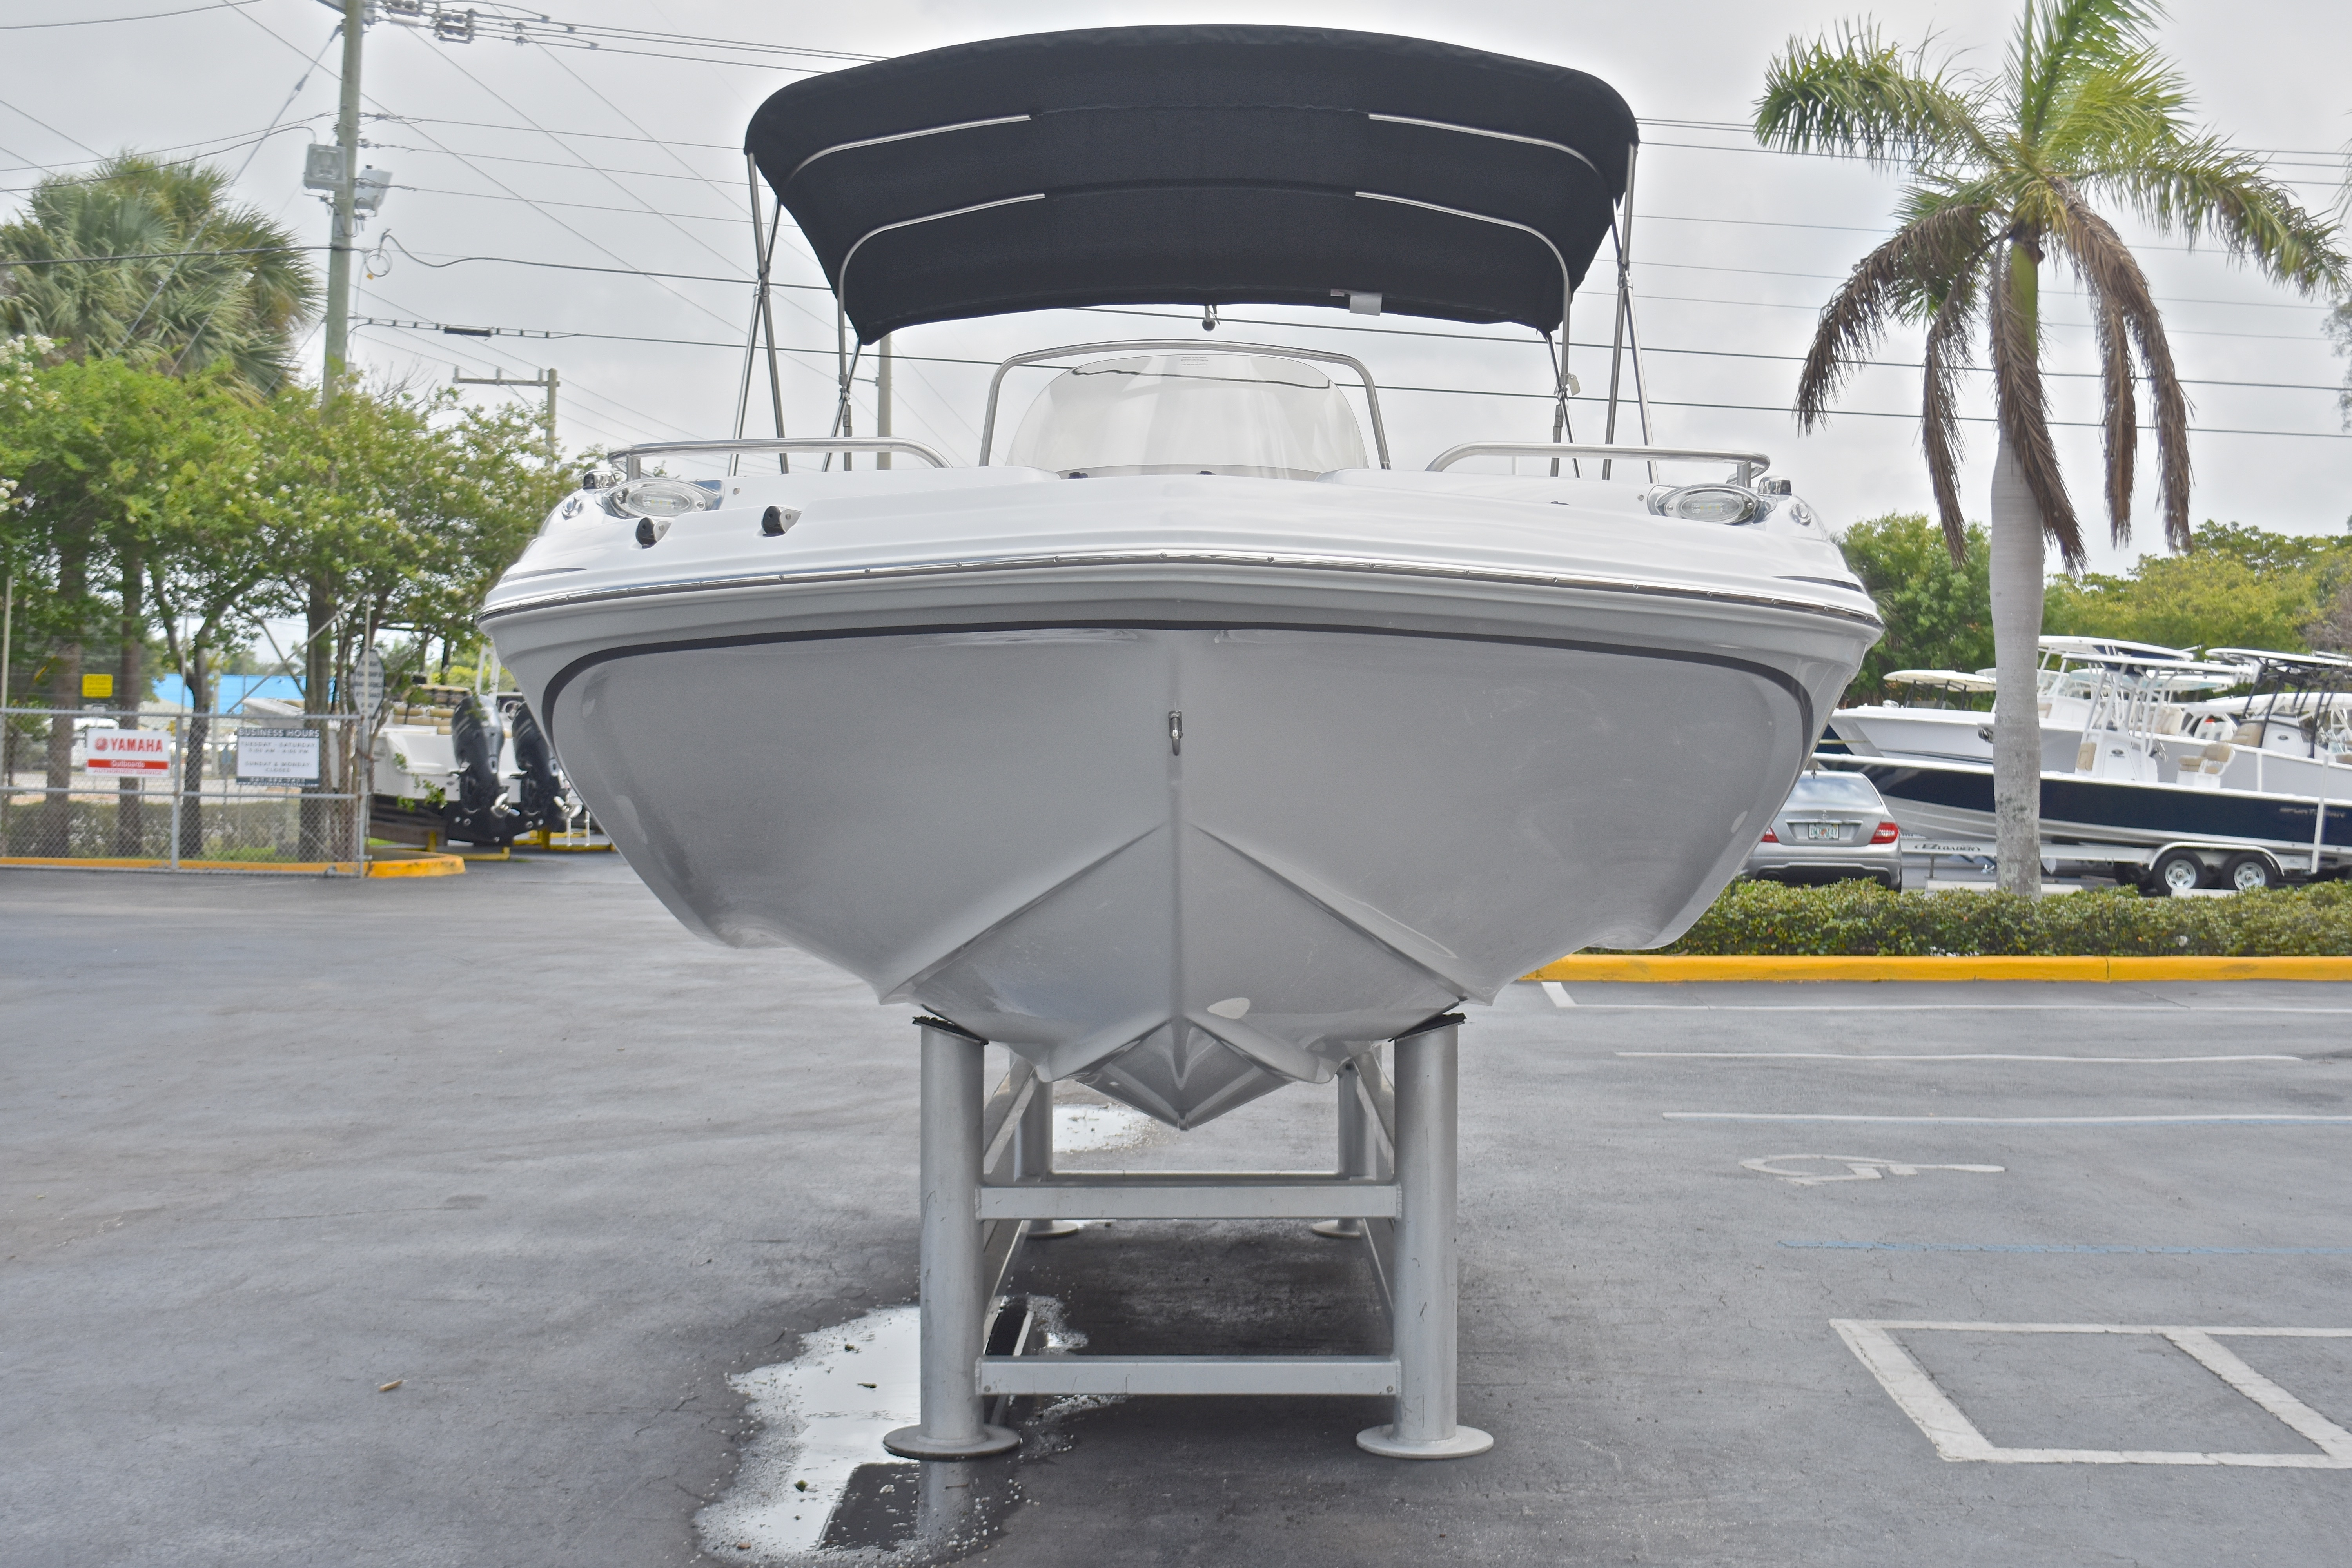 Thumbnail 4 for New 2017 Hurricane SunDeck Sport SS 211 OB boat for sale in West Palm Beach, FL